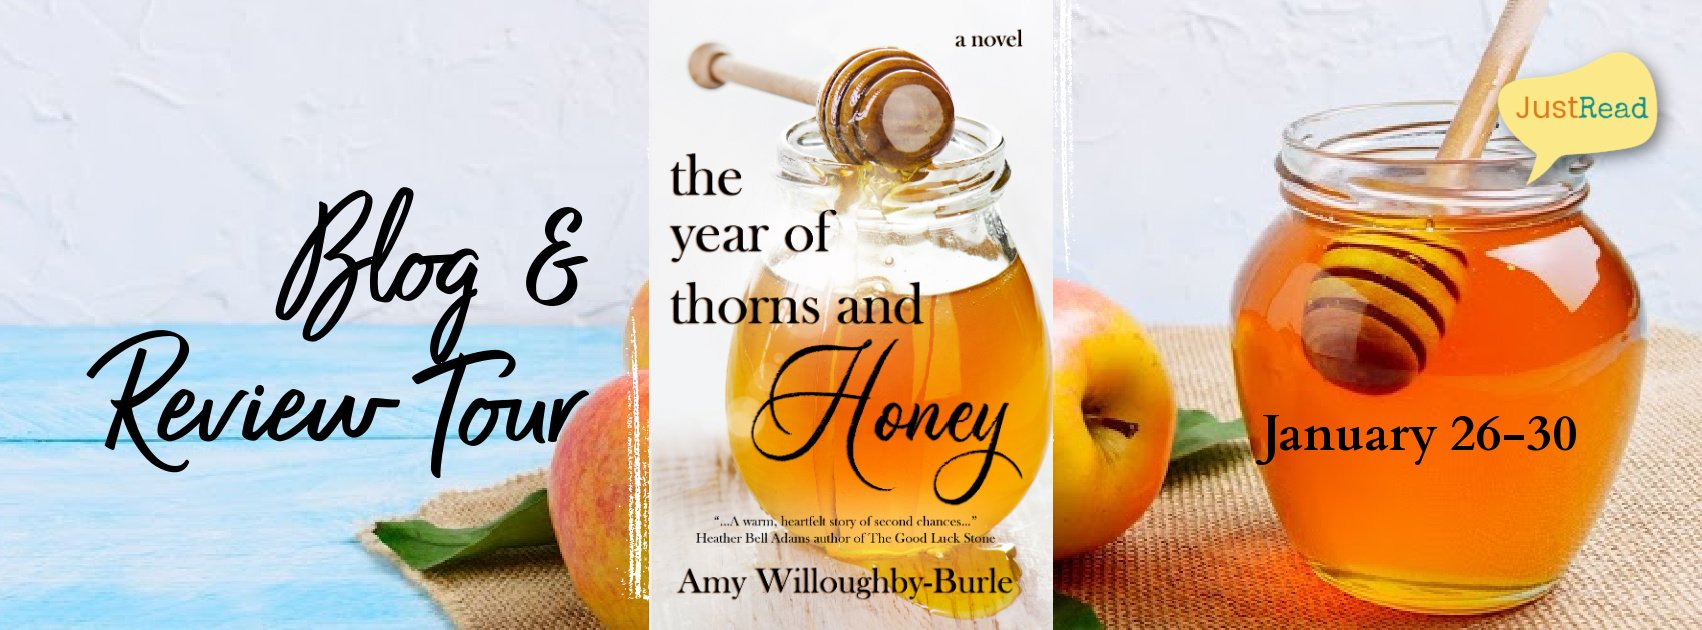 Welcome to The Year of Thorns and Honey Blog + Review Tour & Giveaway!